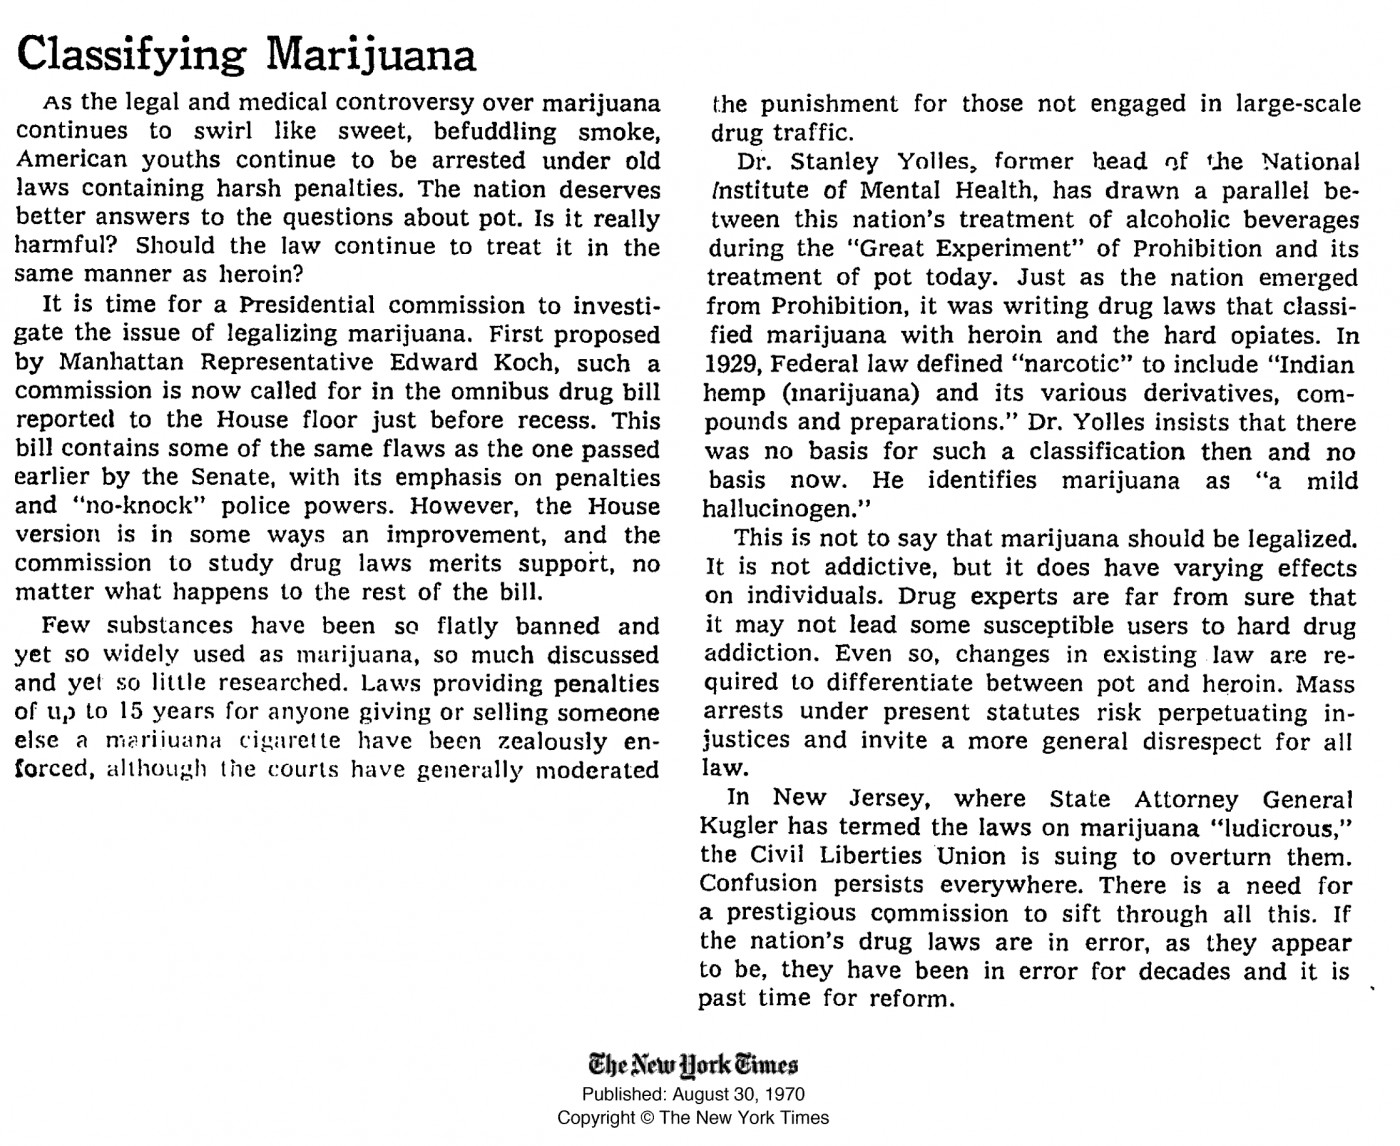 003 Essay Example High Time Classifying Marijuana August Breathtaking Topics Titles Outline 1400